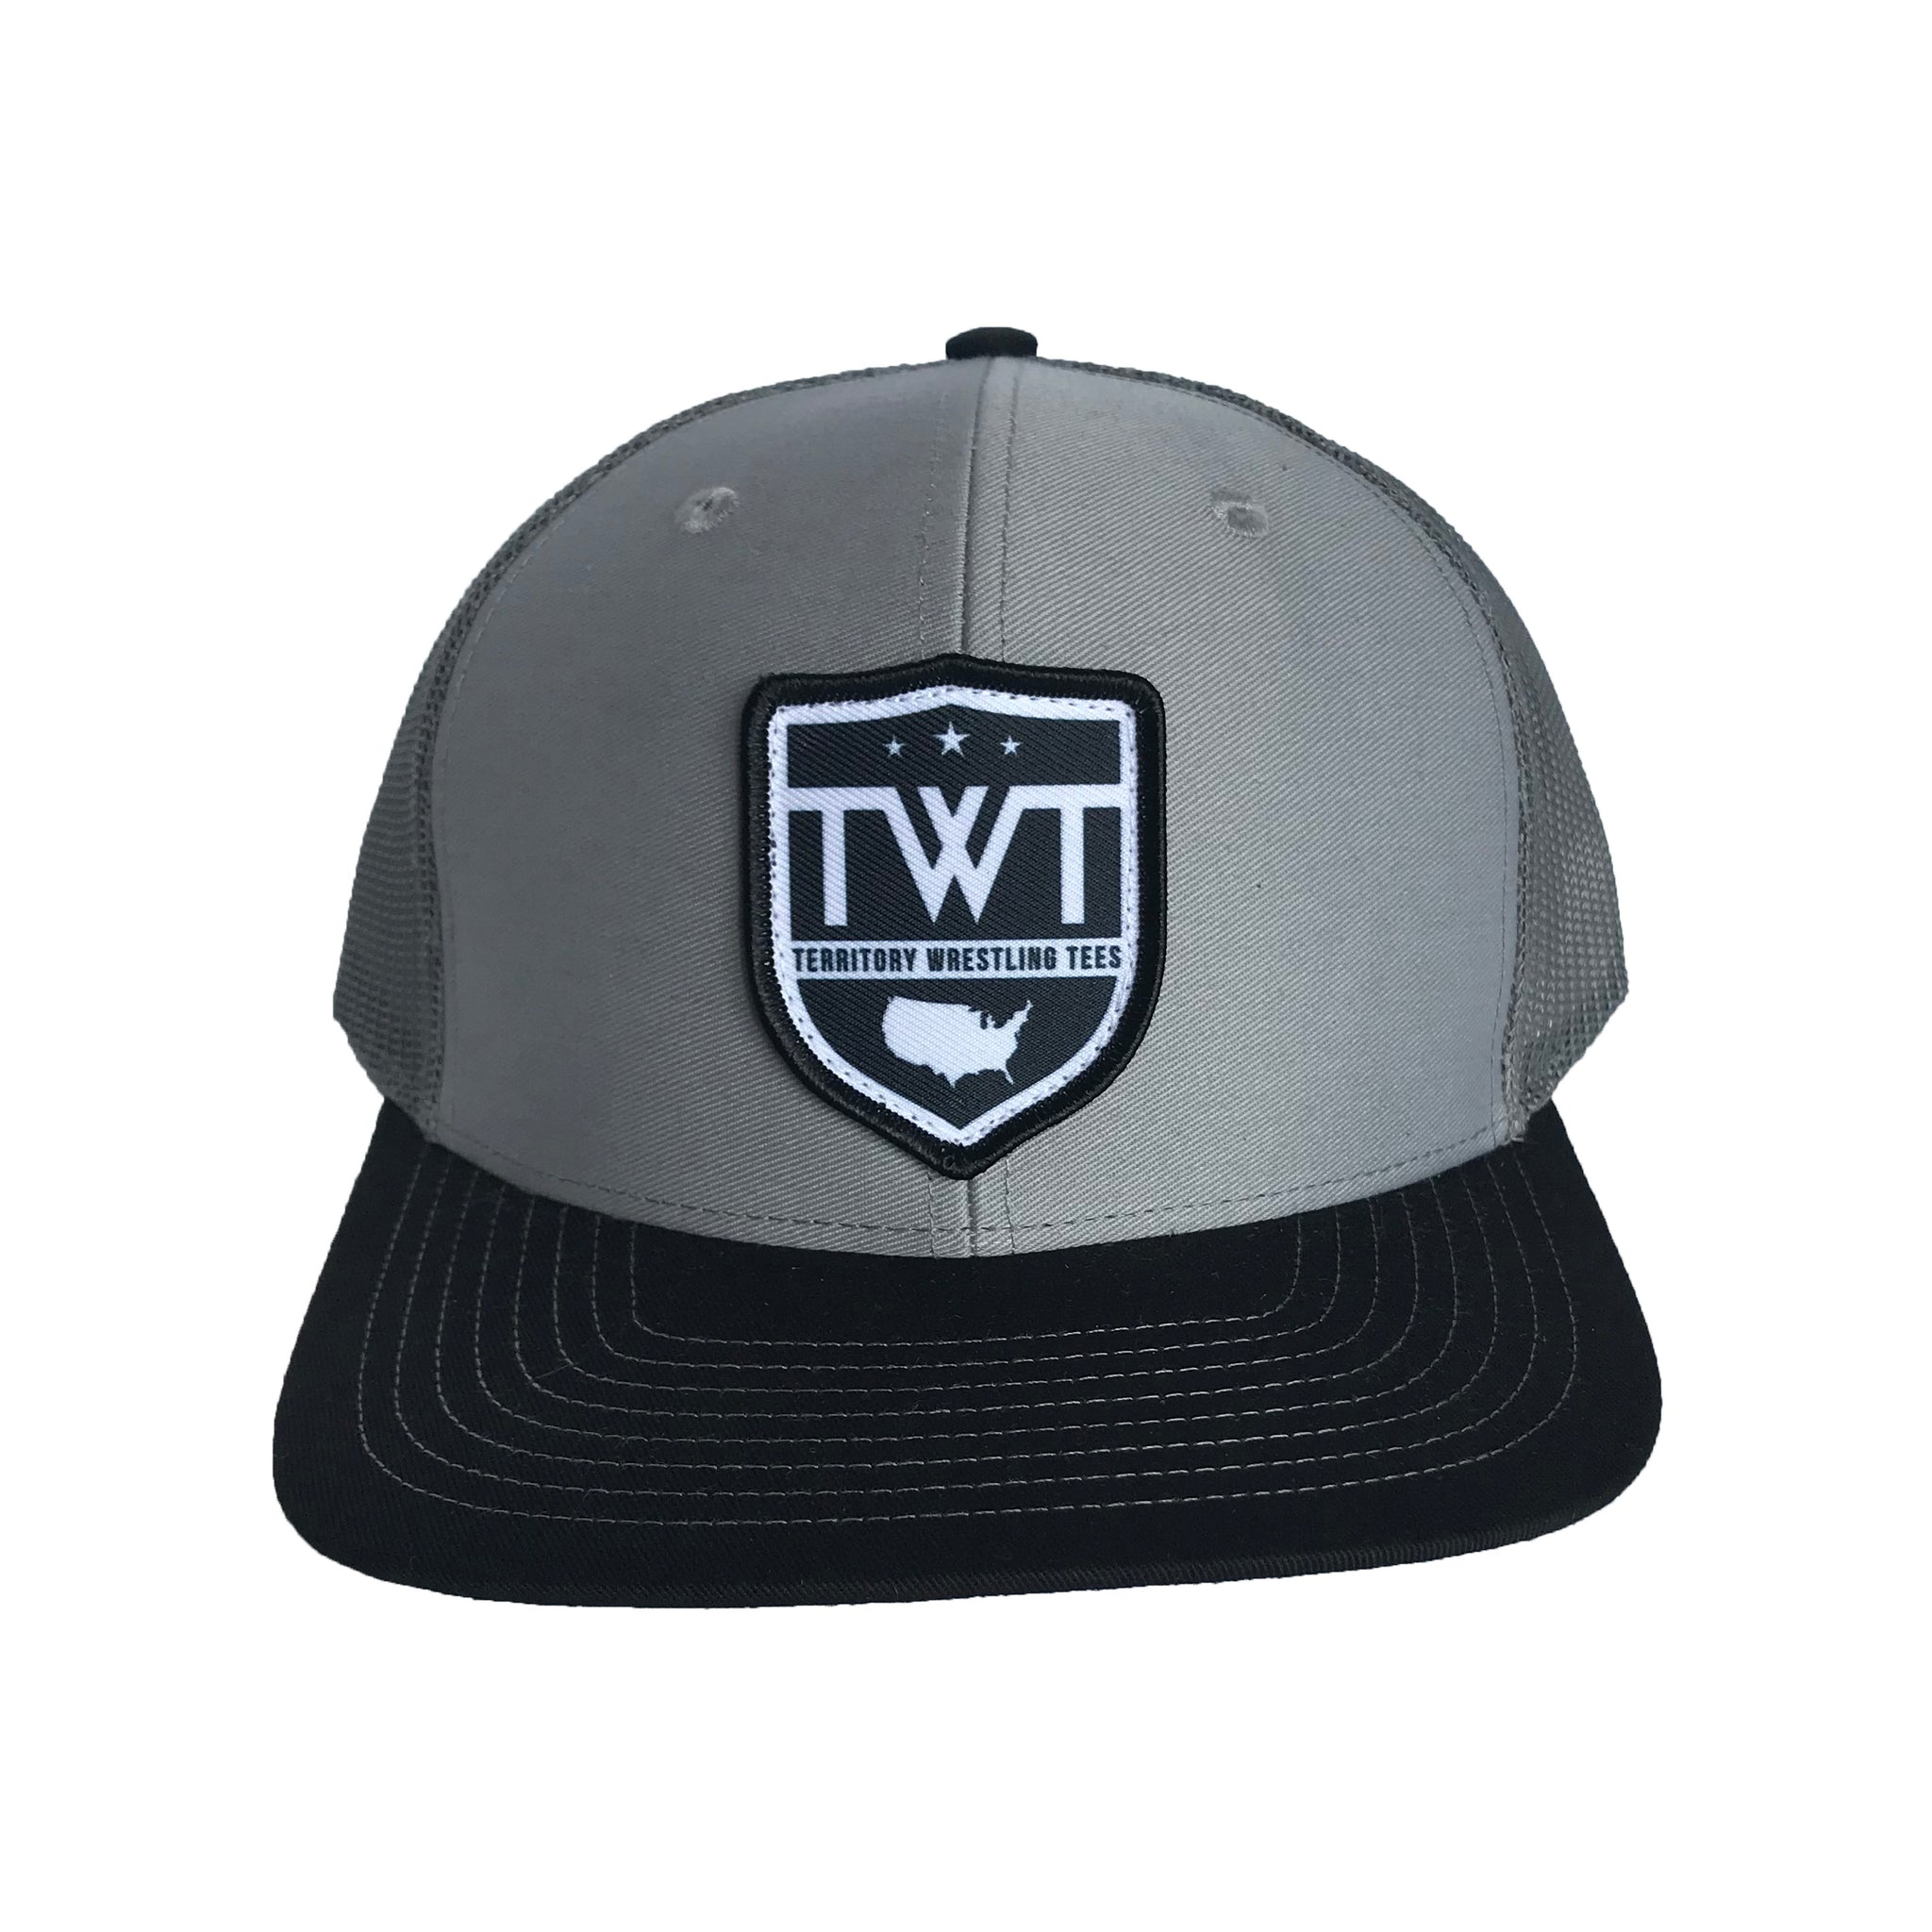 TWT Trucker Hat - Grey/Charcoal/Black